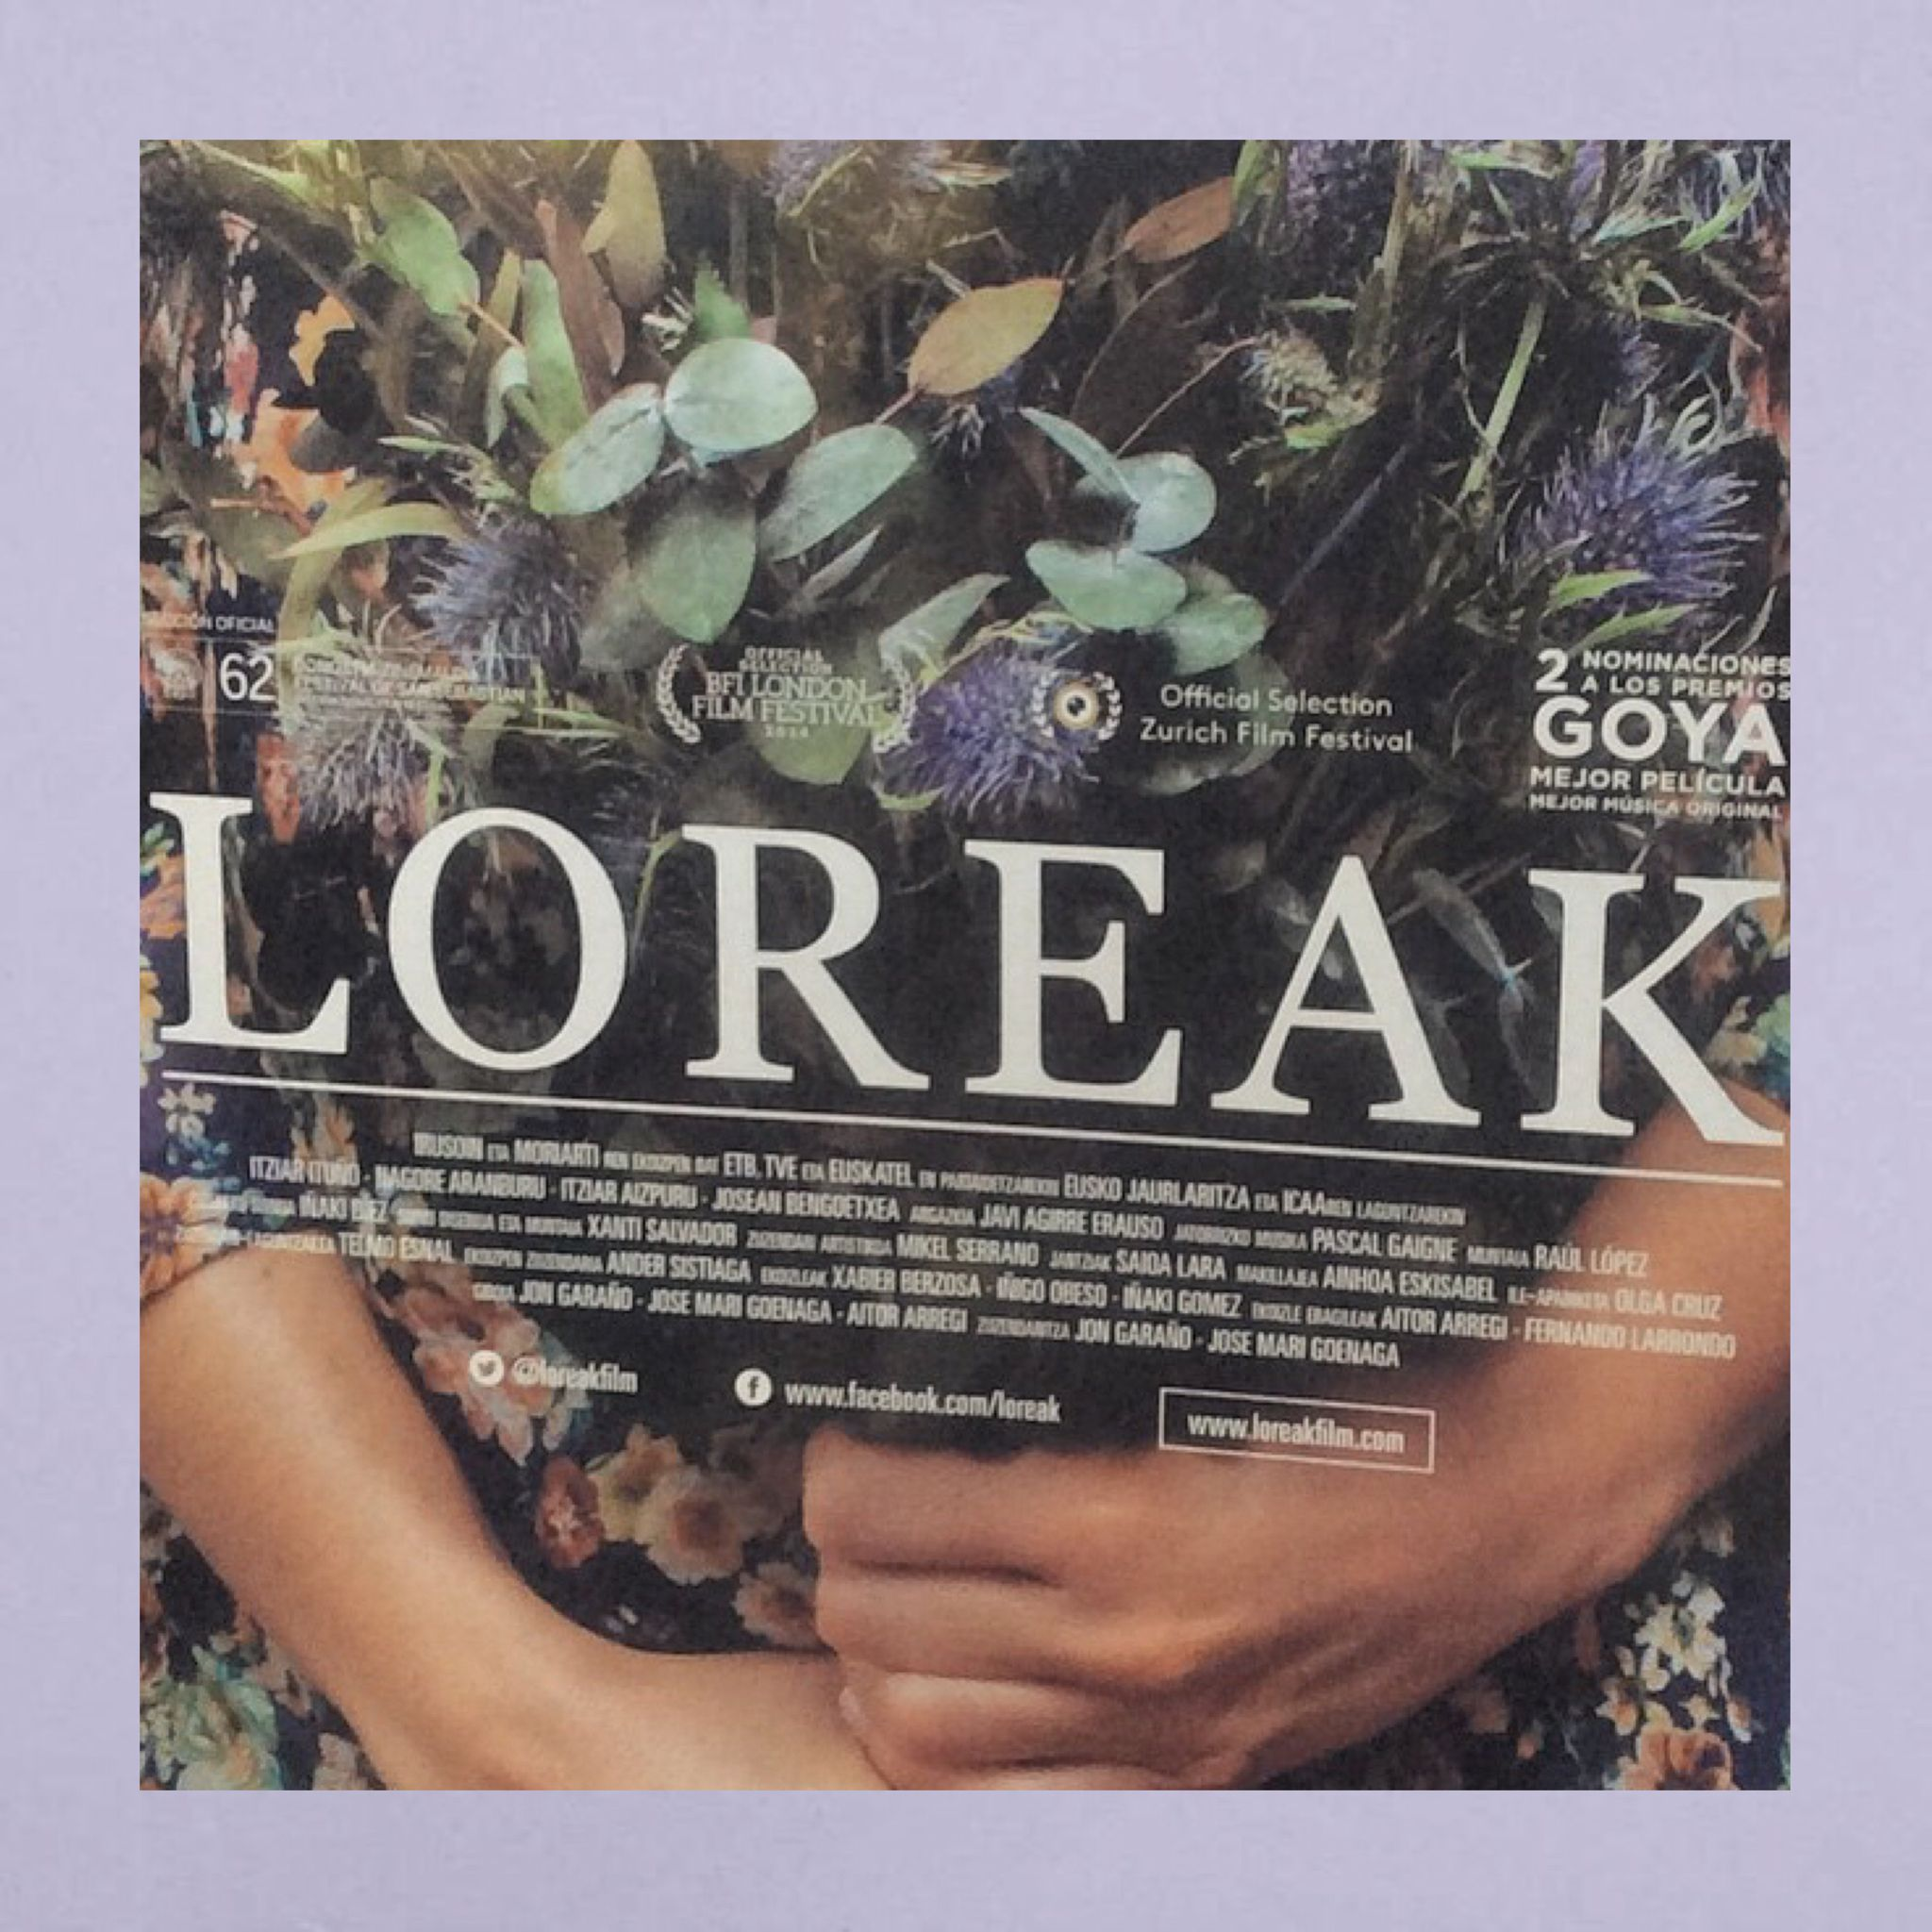 Loreak #spanishmovie